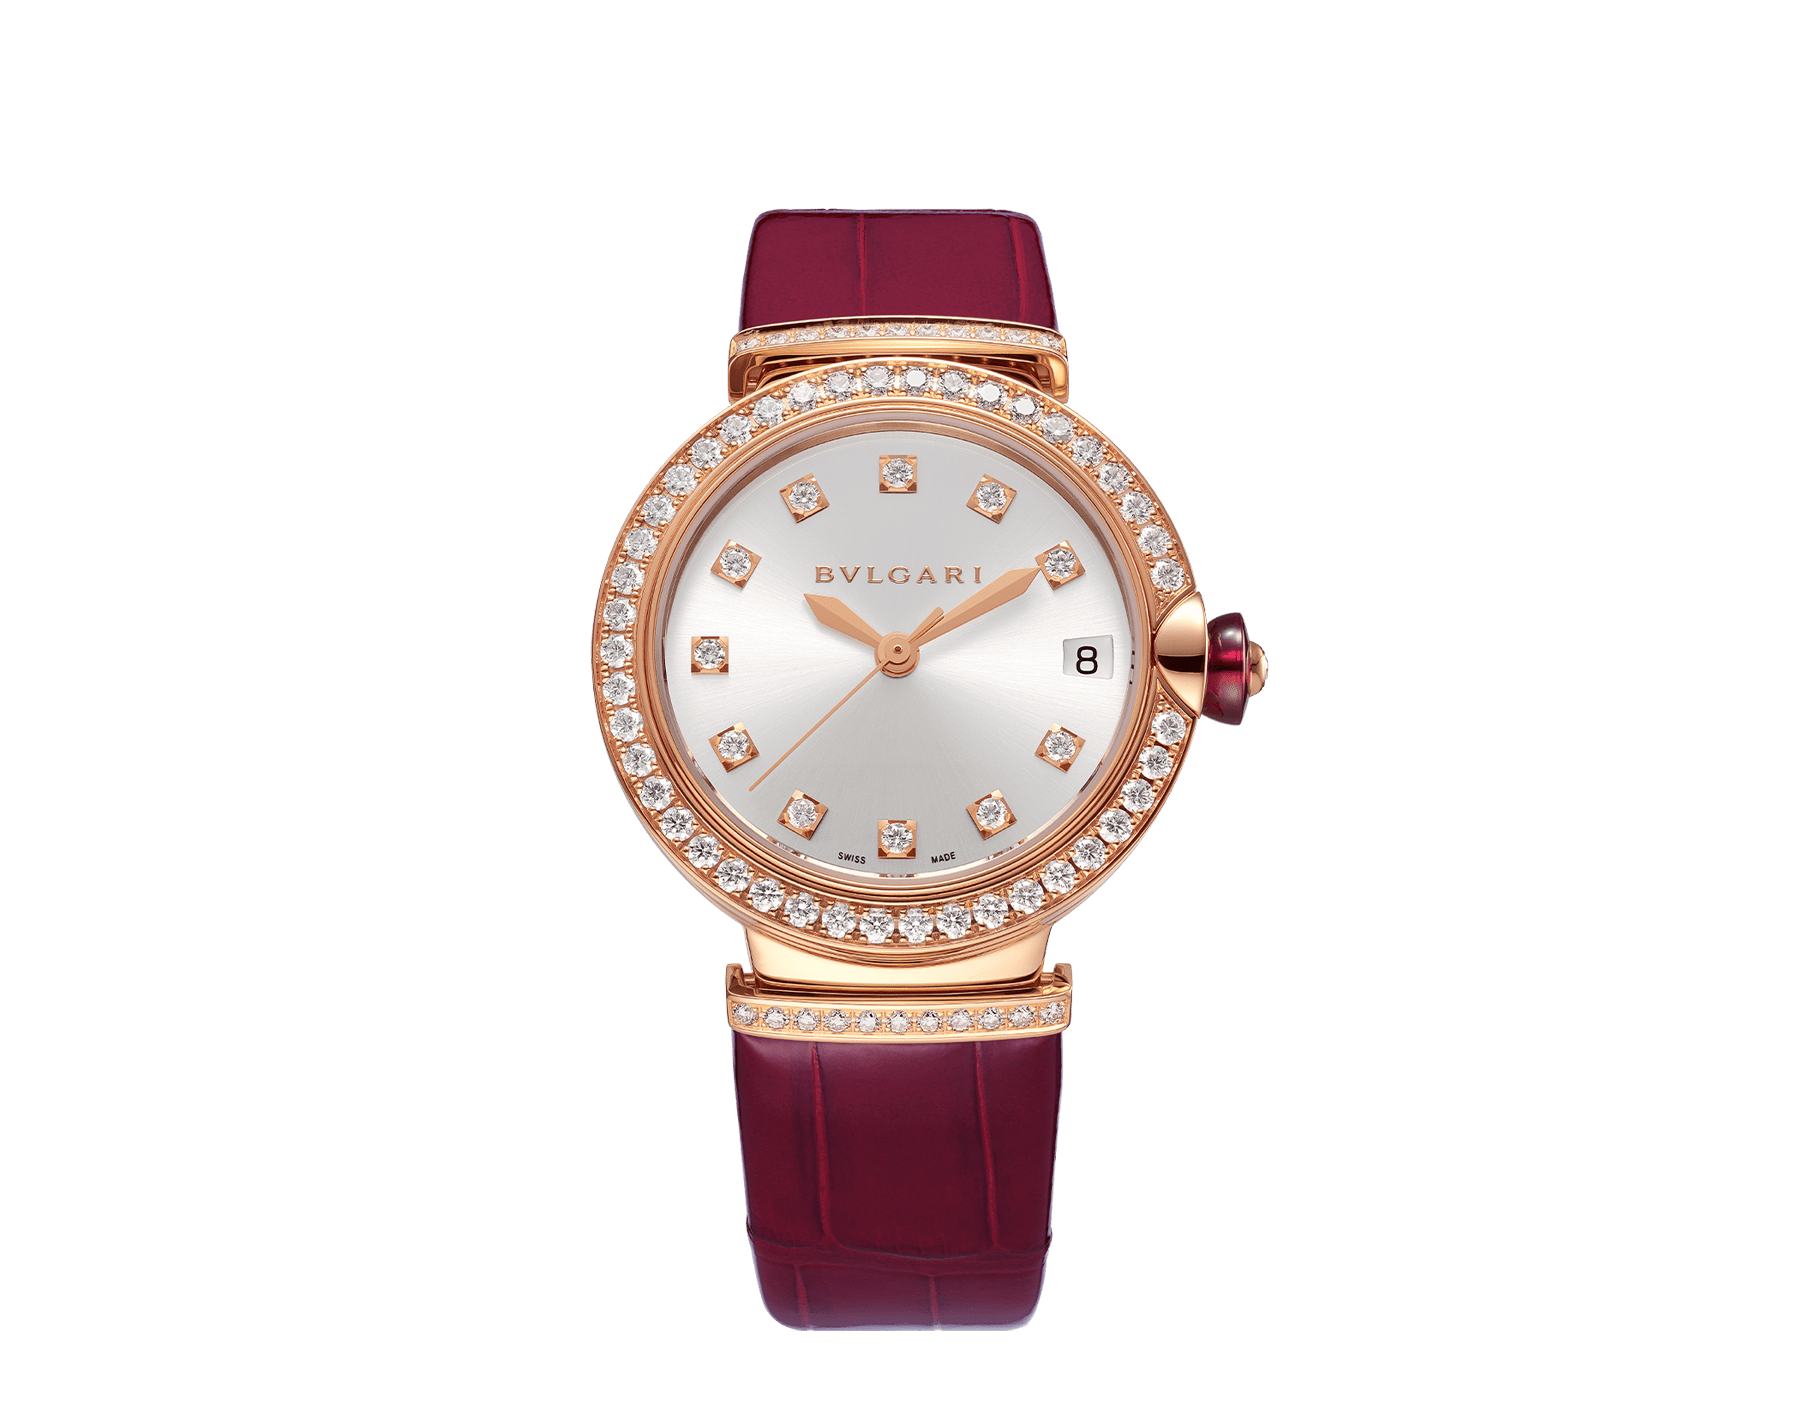 LVCEA watch with 18 kt rose gold and brilliant-cut diamond case, silver satiné soleil dial, diamond indexes and bordeaux alligator bracelet. 102329 image 1